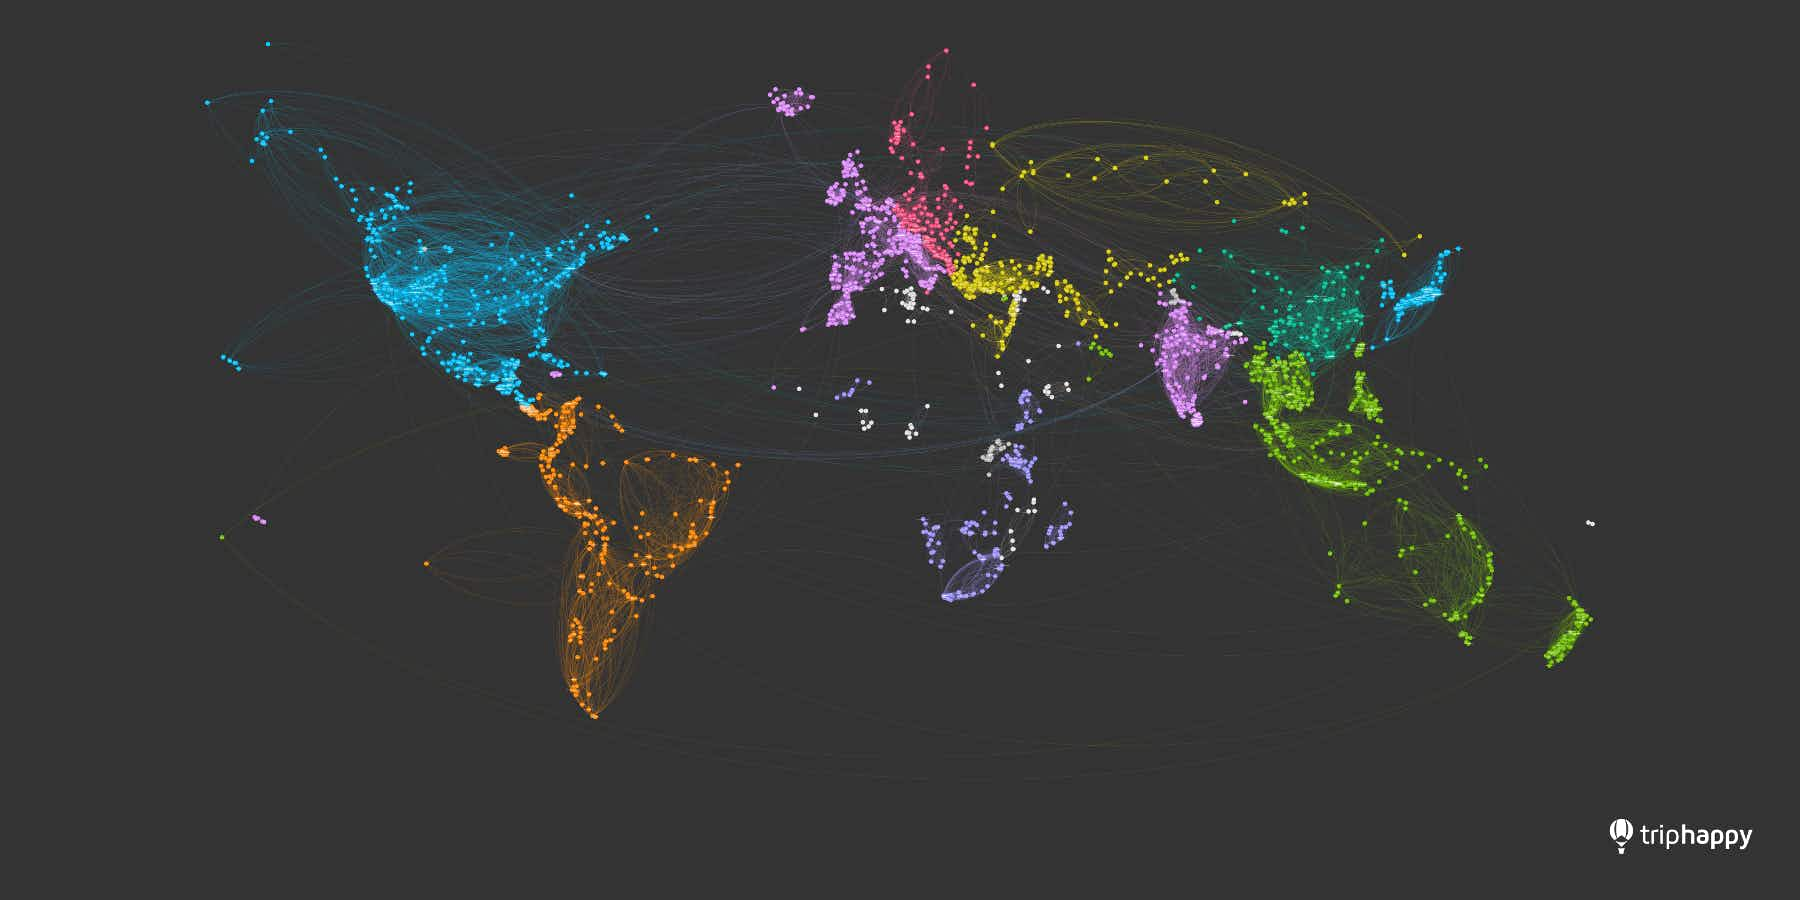 See this beautiful world map created from travellers' journeys